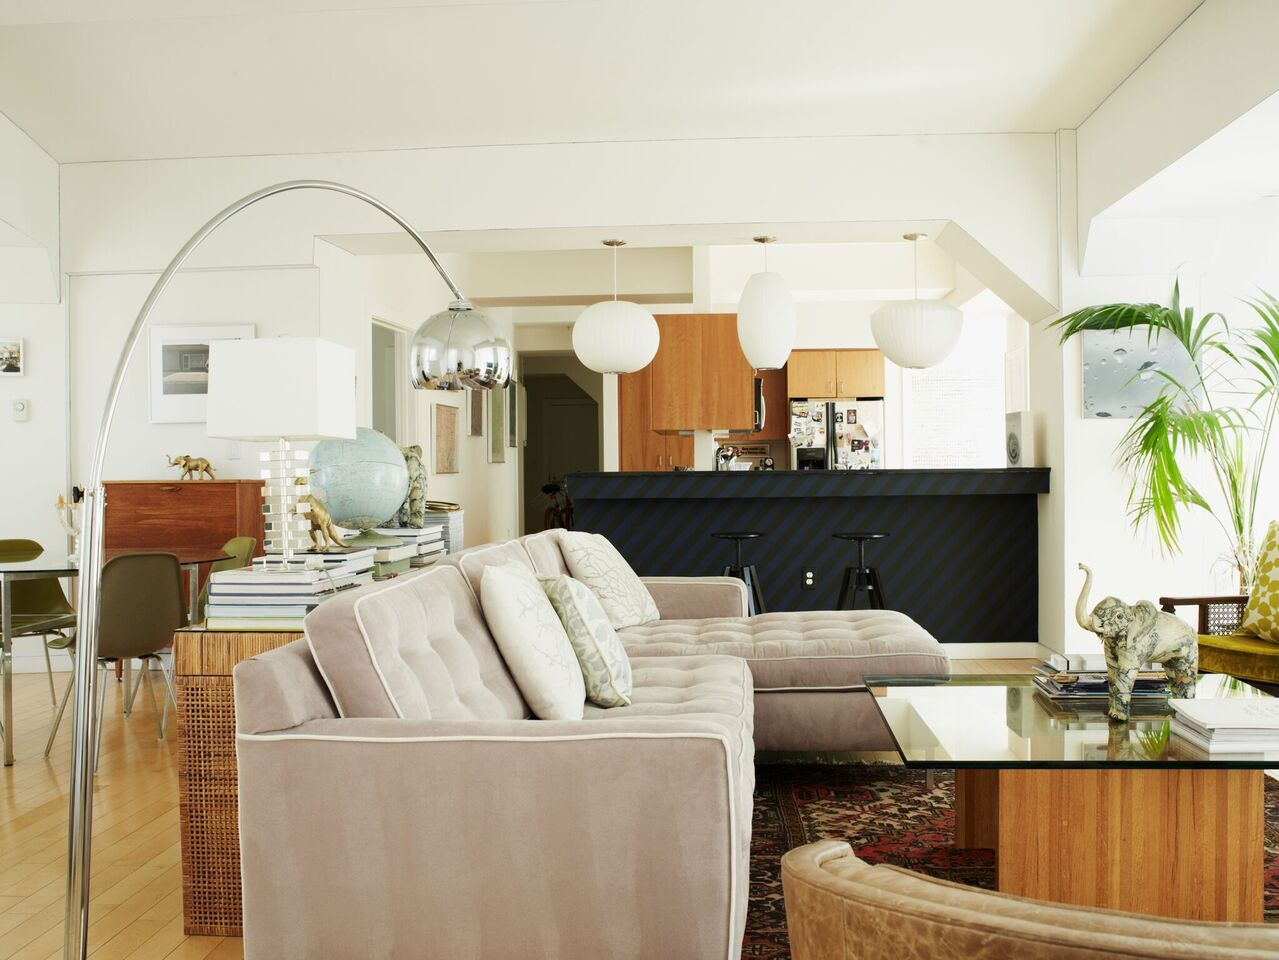 House Tour: An Elegantly Collected Apartment in the East Bay